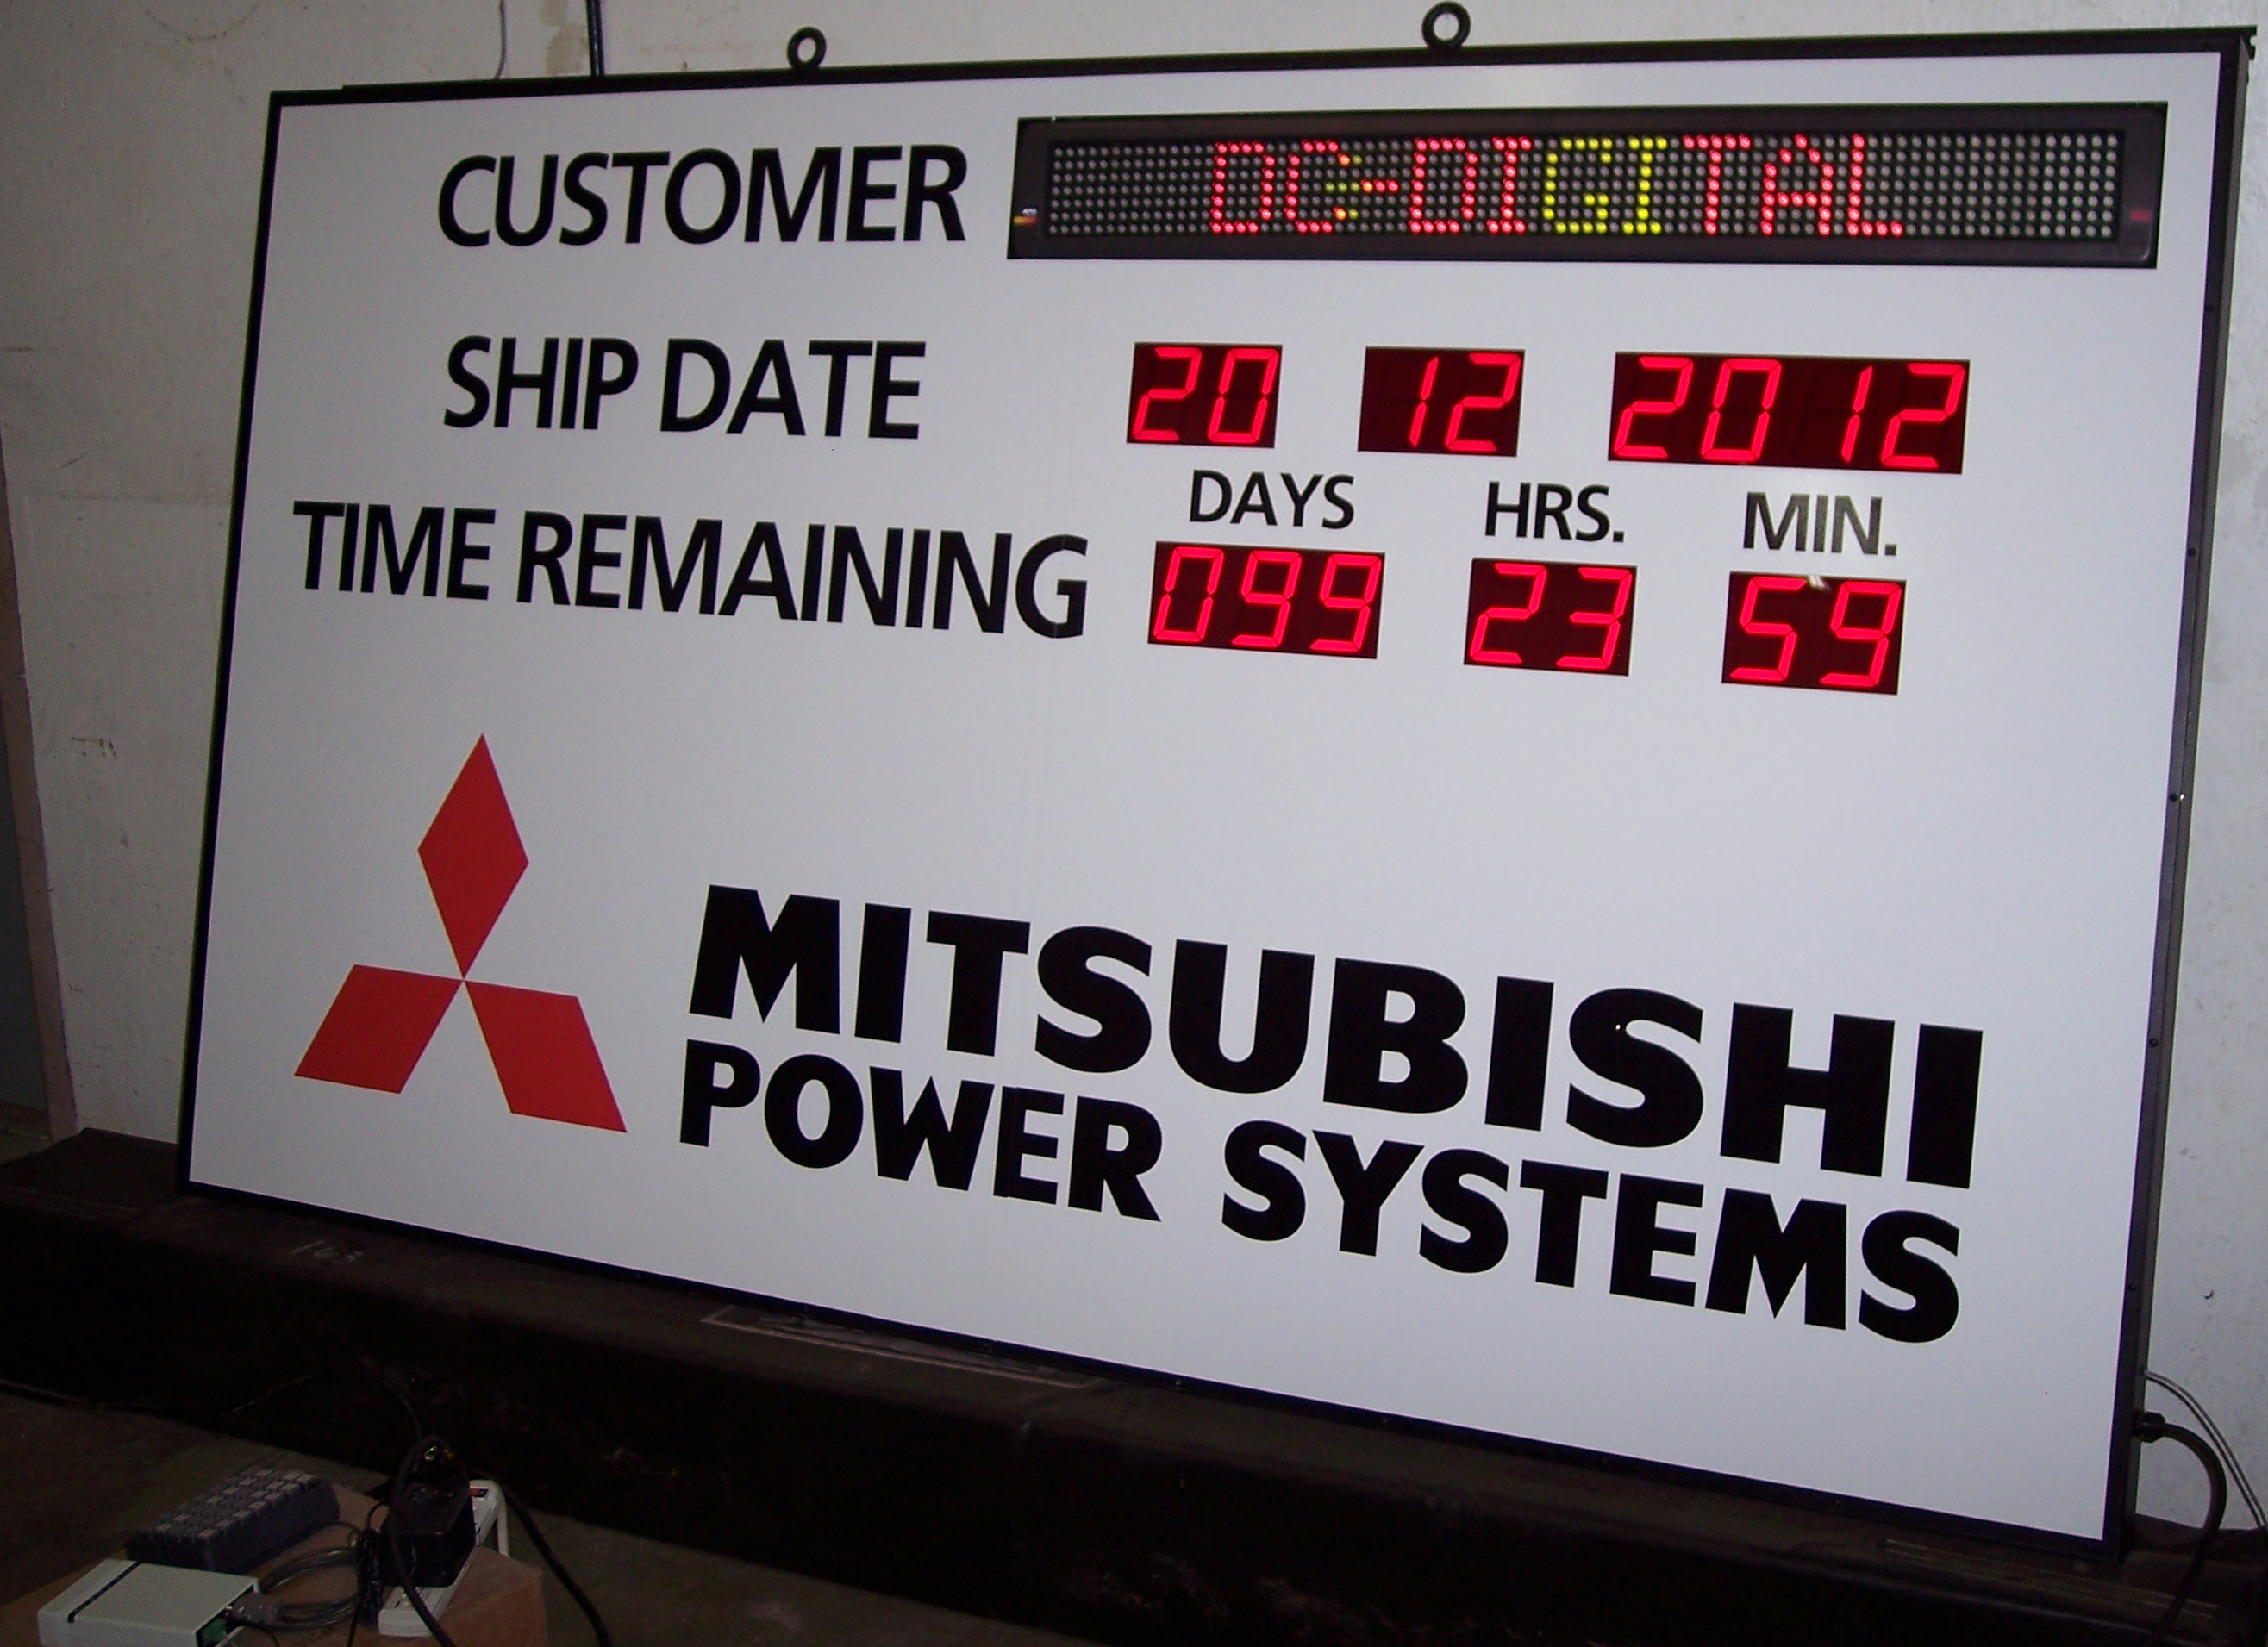 Mitsubishi power Ship Date Timers and message board